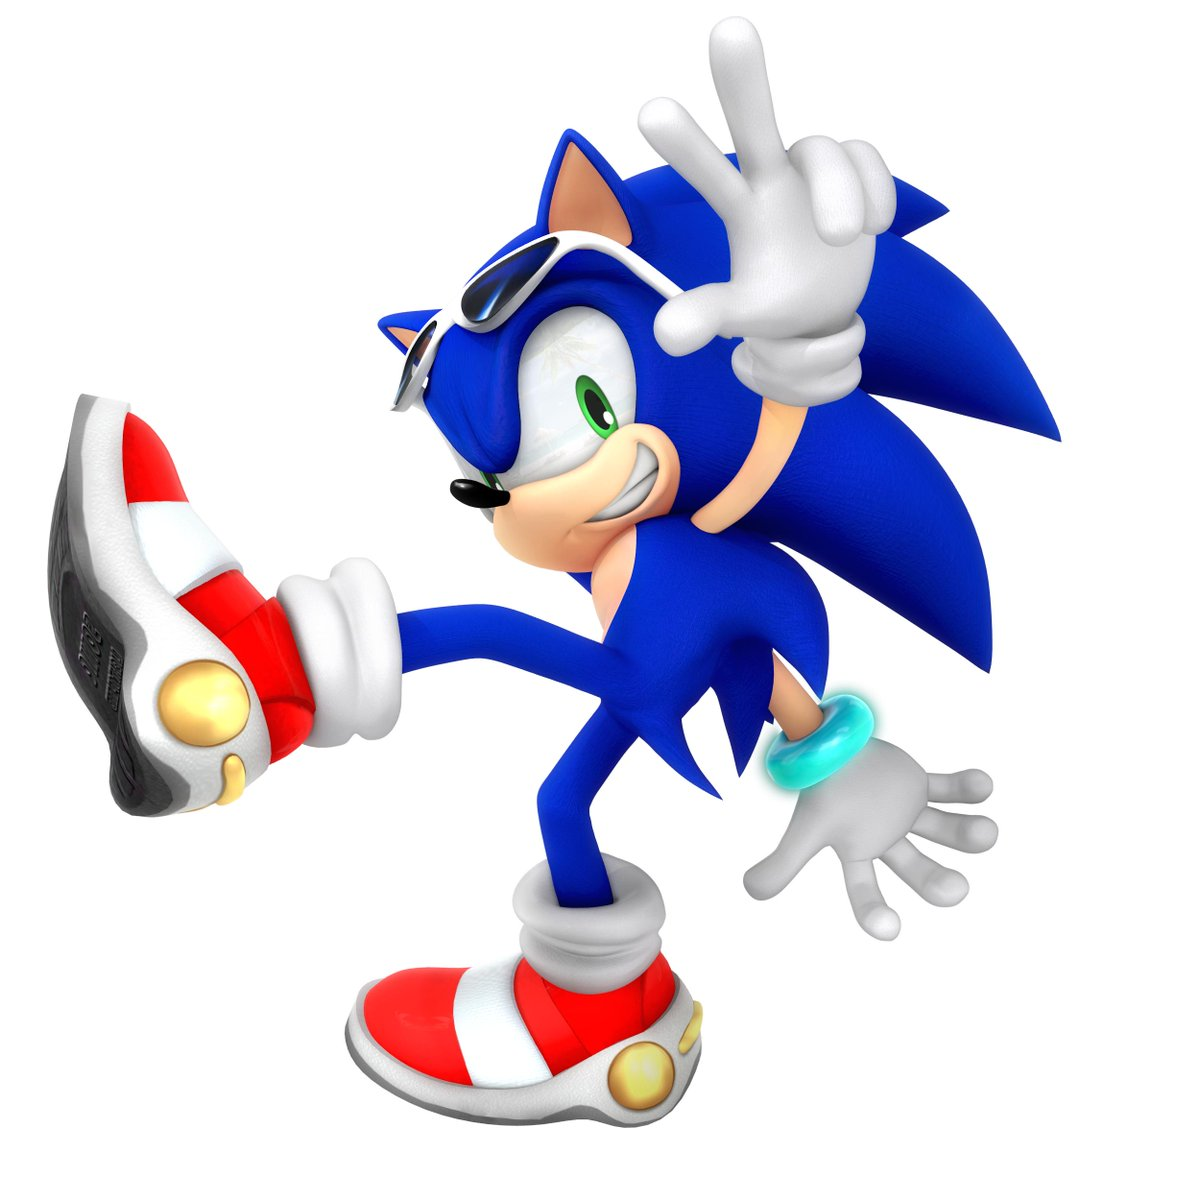 Nibroc Rock On Twitter Sonic Adventure And The Dreamcast Turns 20 Years Old Today In North America Radical Let S Celebrate